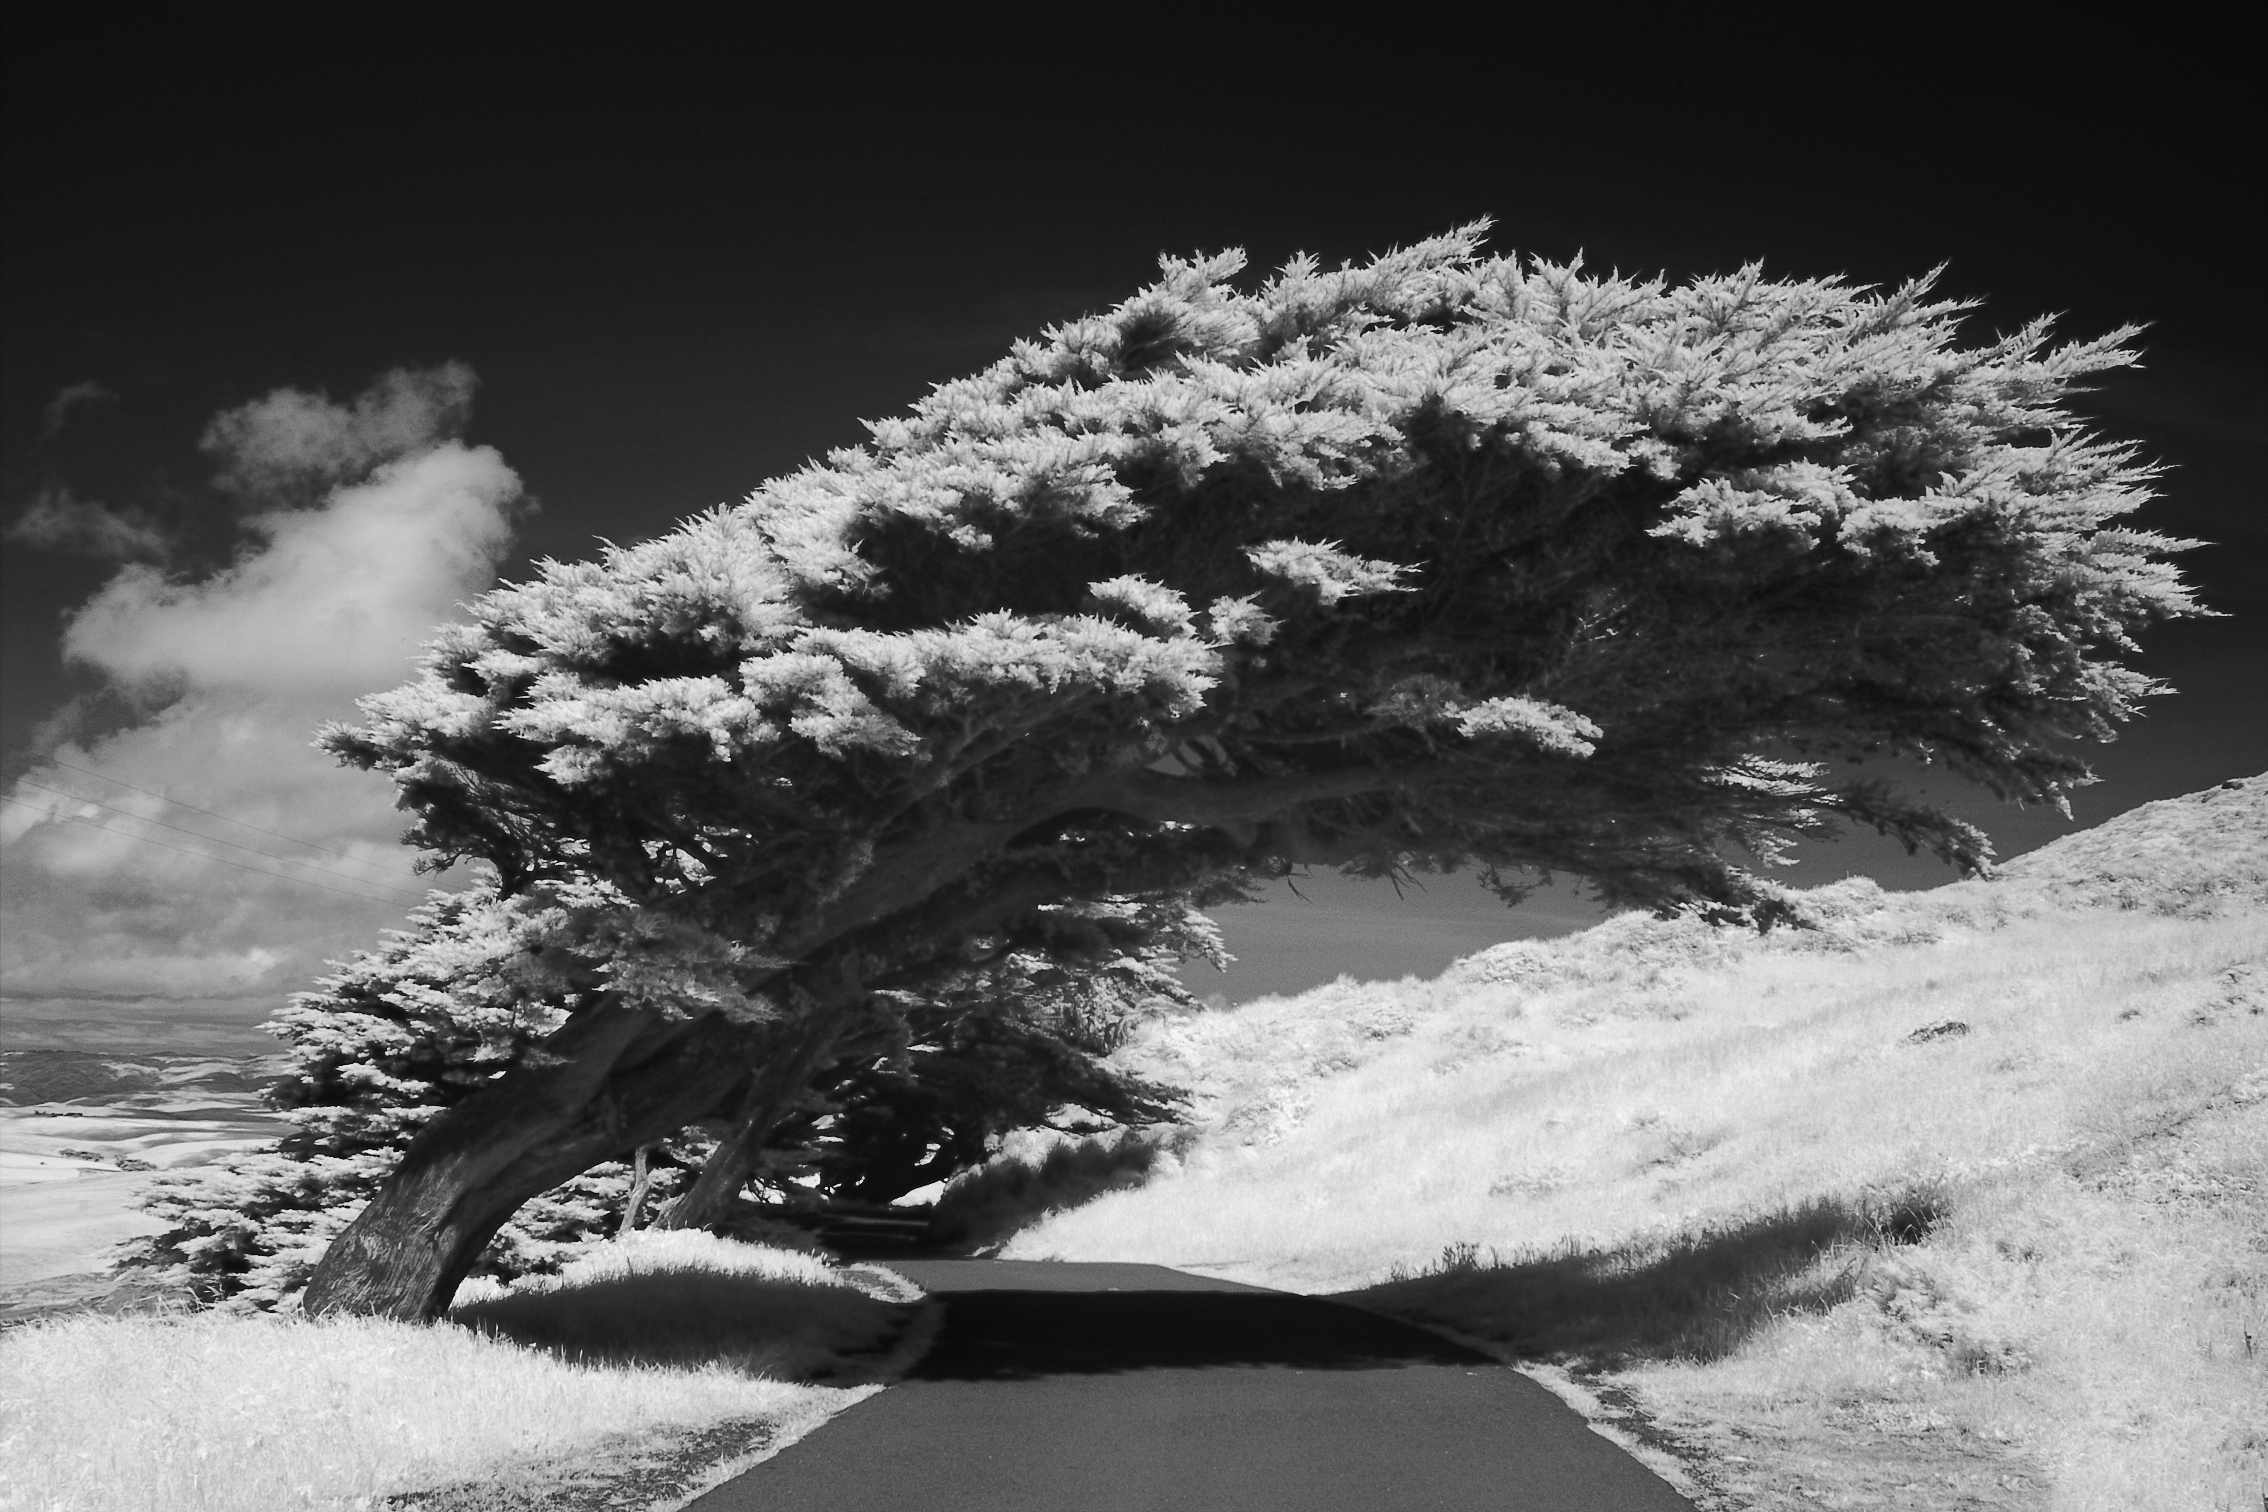 Bending cypress infrared shot by sigma sd10 with b w 093 filter iso 100 f 8 1 160 s